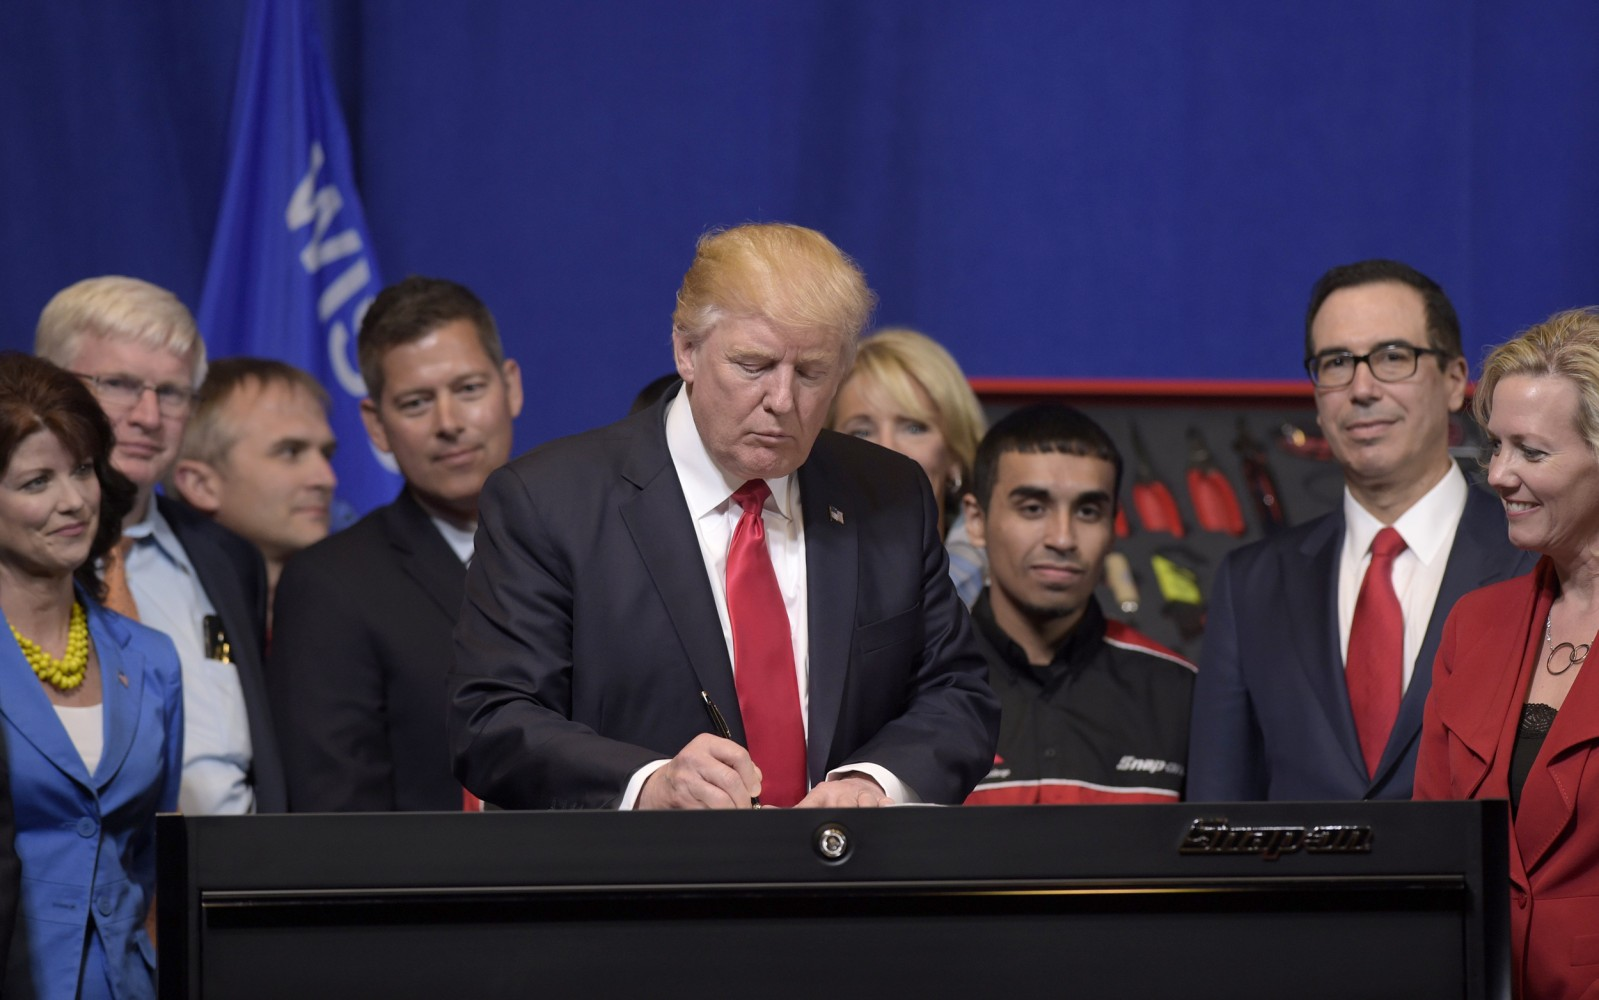 Image President Donald Trump signs an executive order during a visit to the headquarters of tool manufacturer Snap-on Inc. in Kenosha Wisconsin